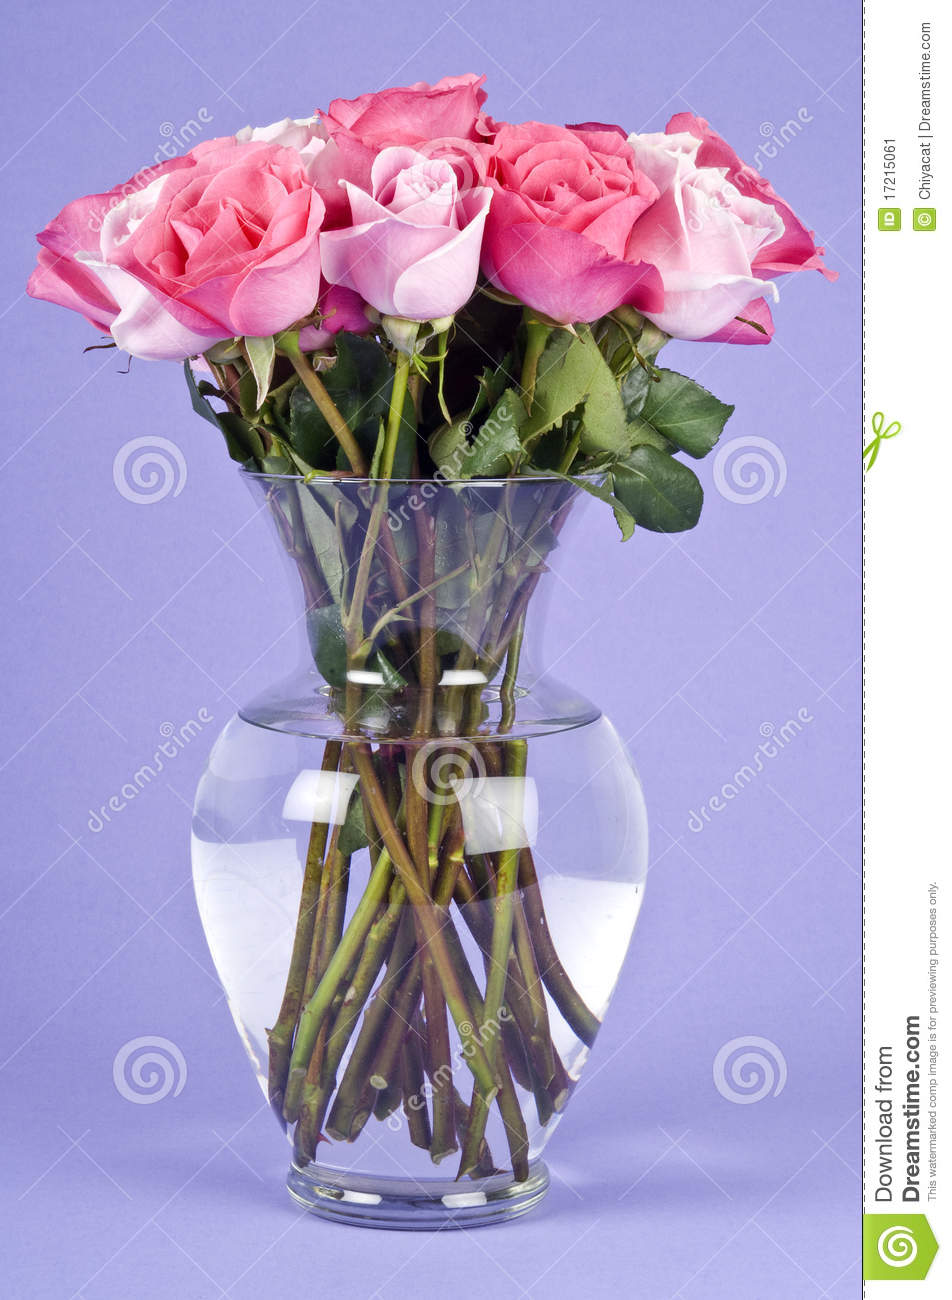 bouquet des roses roses dans un vase en verre image stock image 17215061. Black Bedroom Furniture Sets. Home Design Ideas